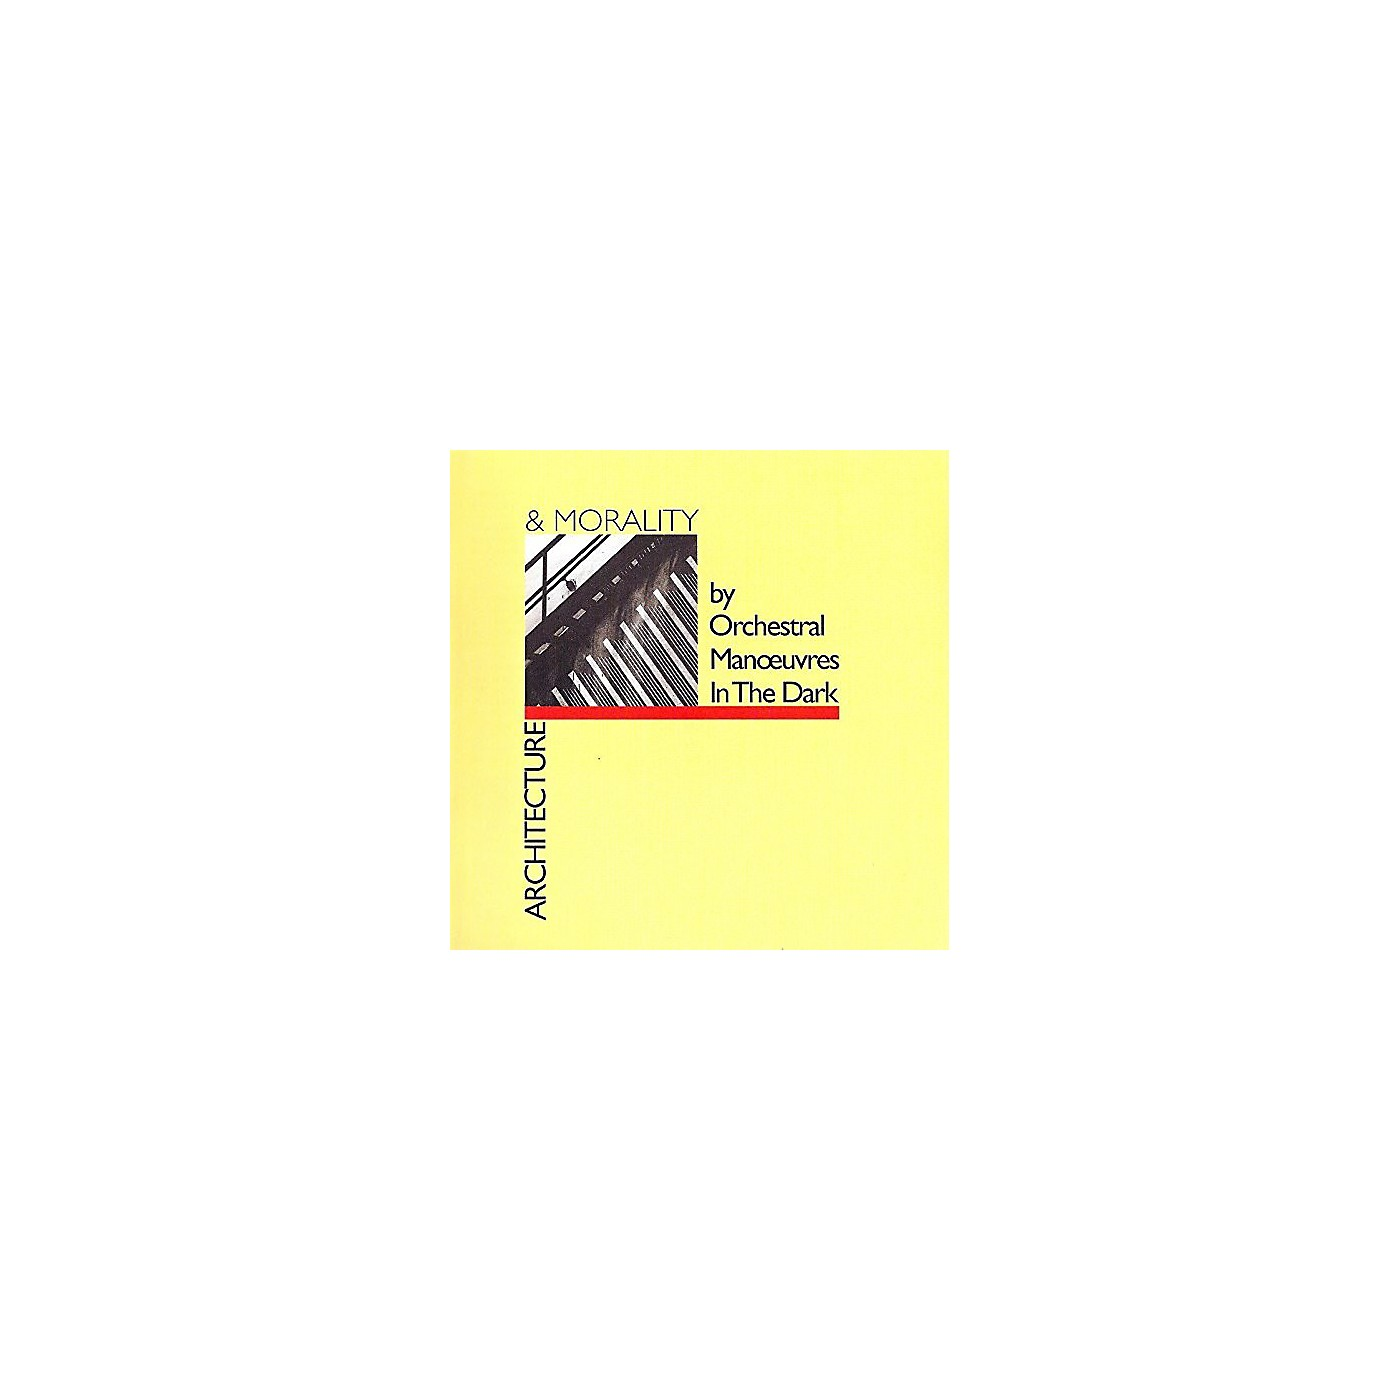 Alliance Omd ( Orchestral Manoeuvres in the Dark ) - Architecture & Morality thumbnail